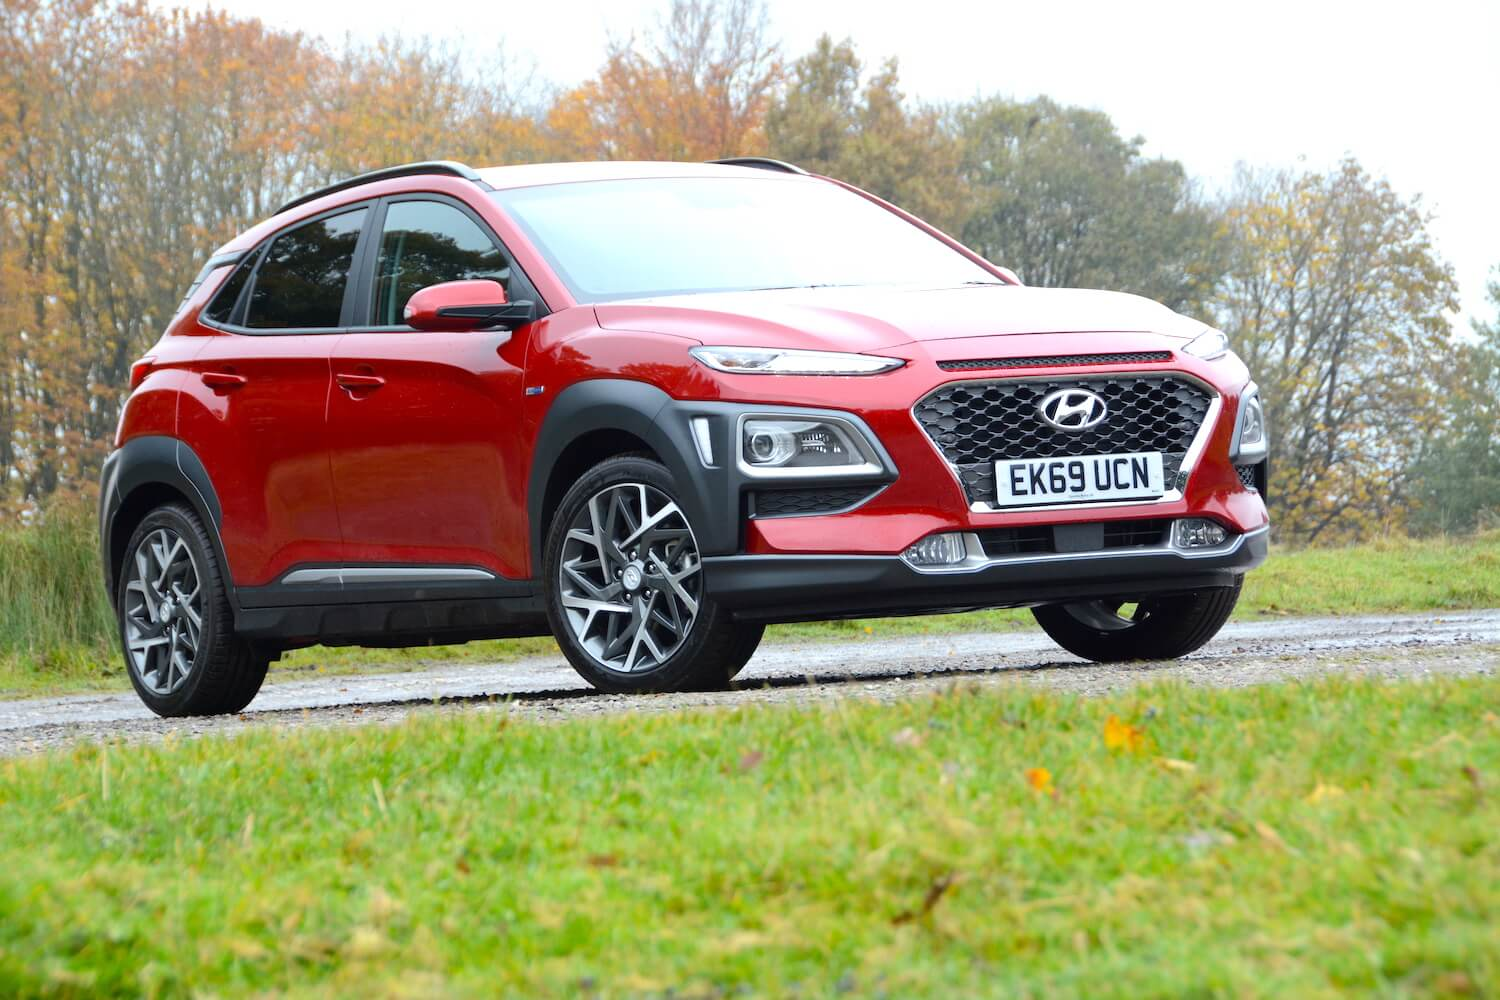 hyundai kona hybrid premium se 1 6 gdi 141ps 6 speed dct review. Black Bedroom Furniture Sets. Home Design Ideas